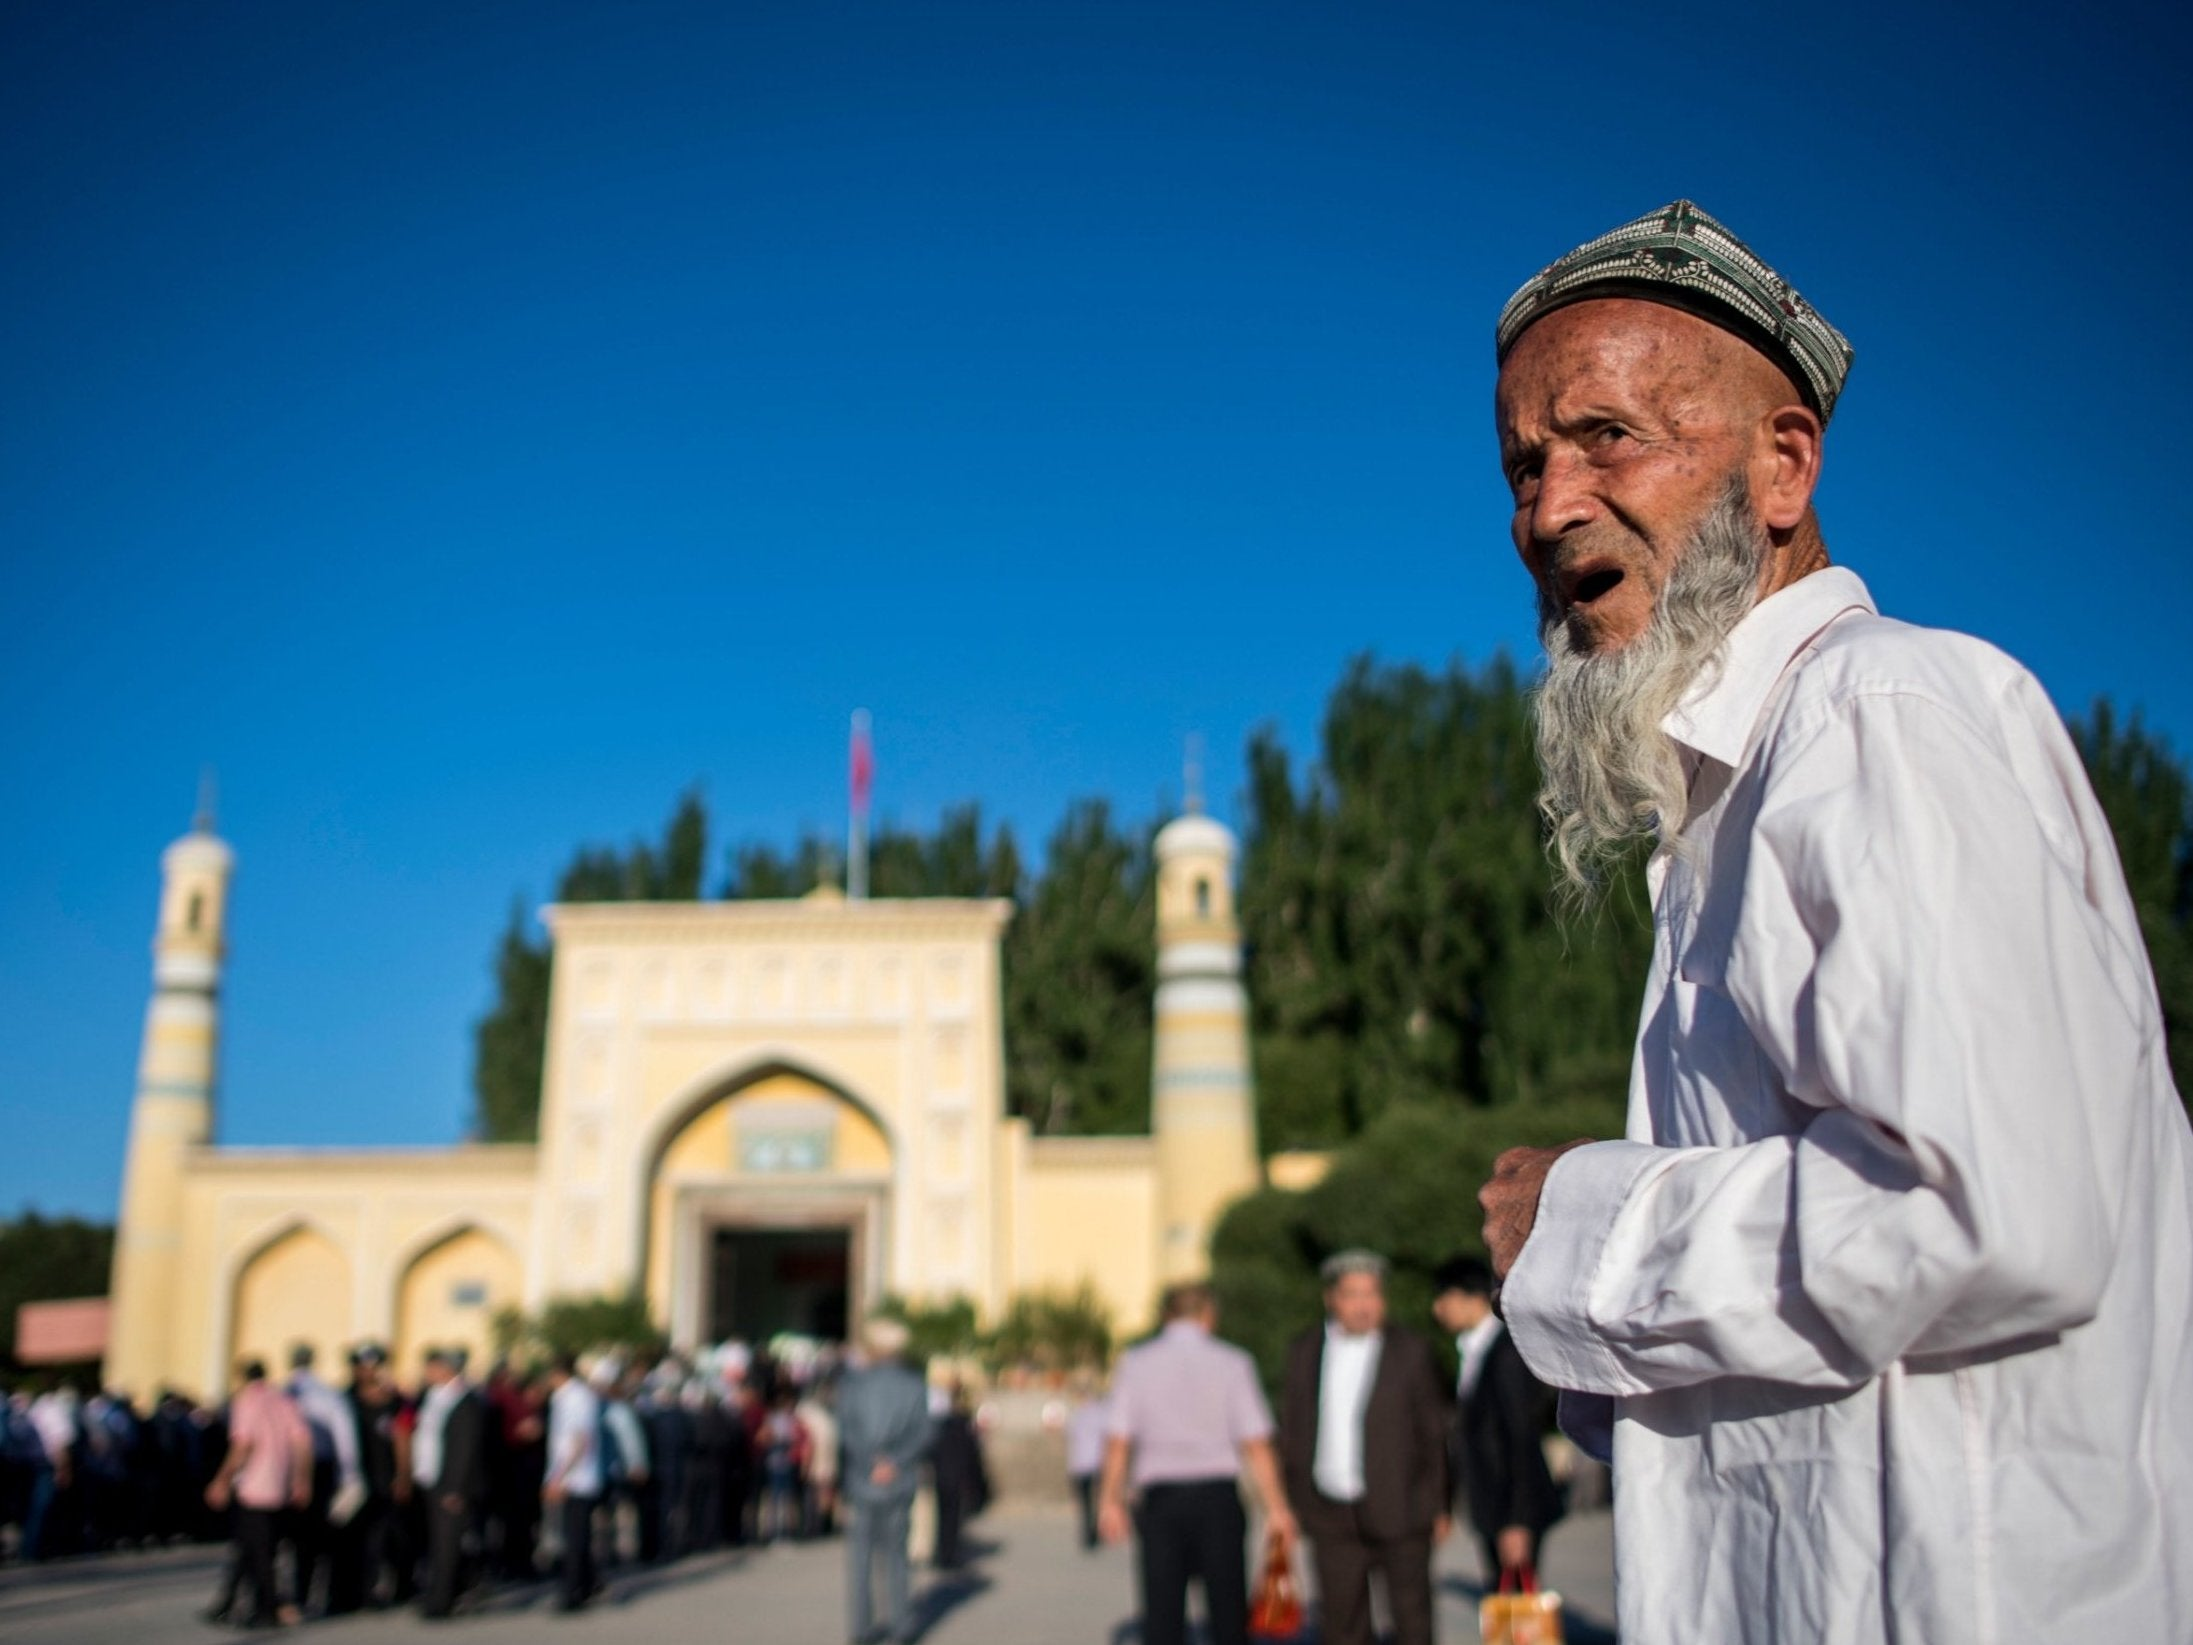 Turkey calls on China to close Muslim 'concentration camps' where one million Uighurs have been detained